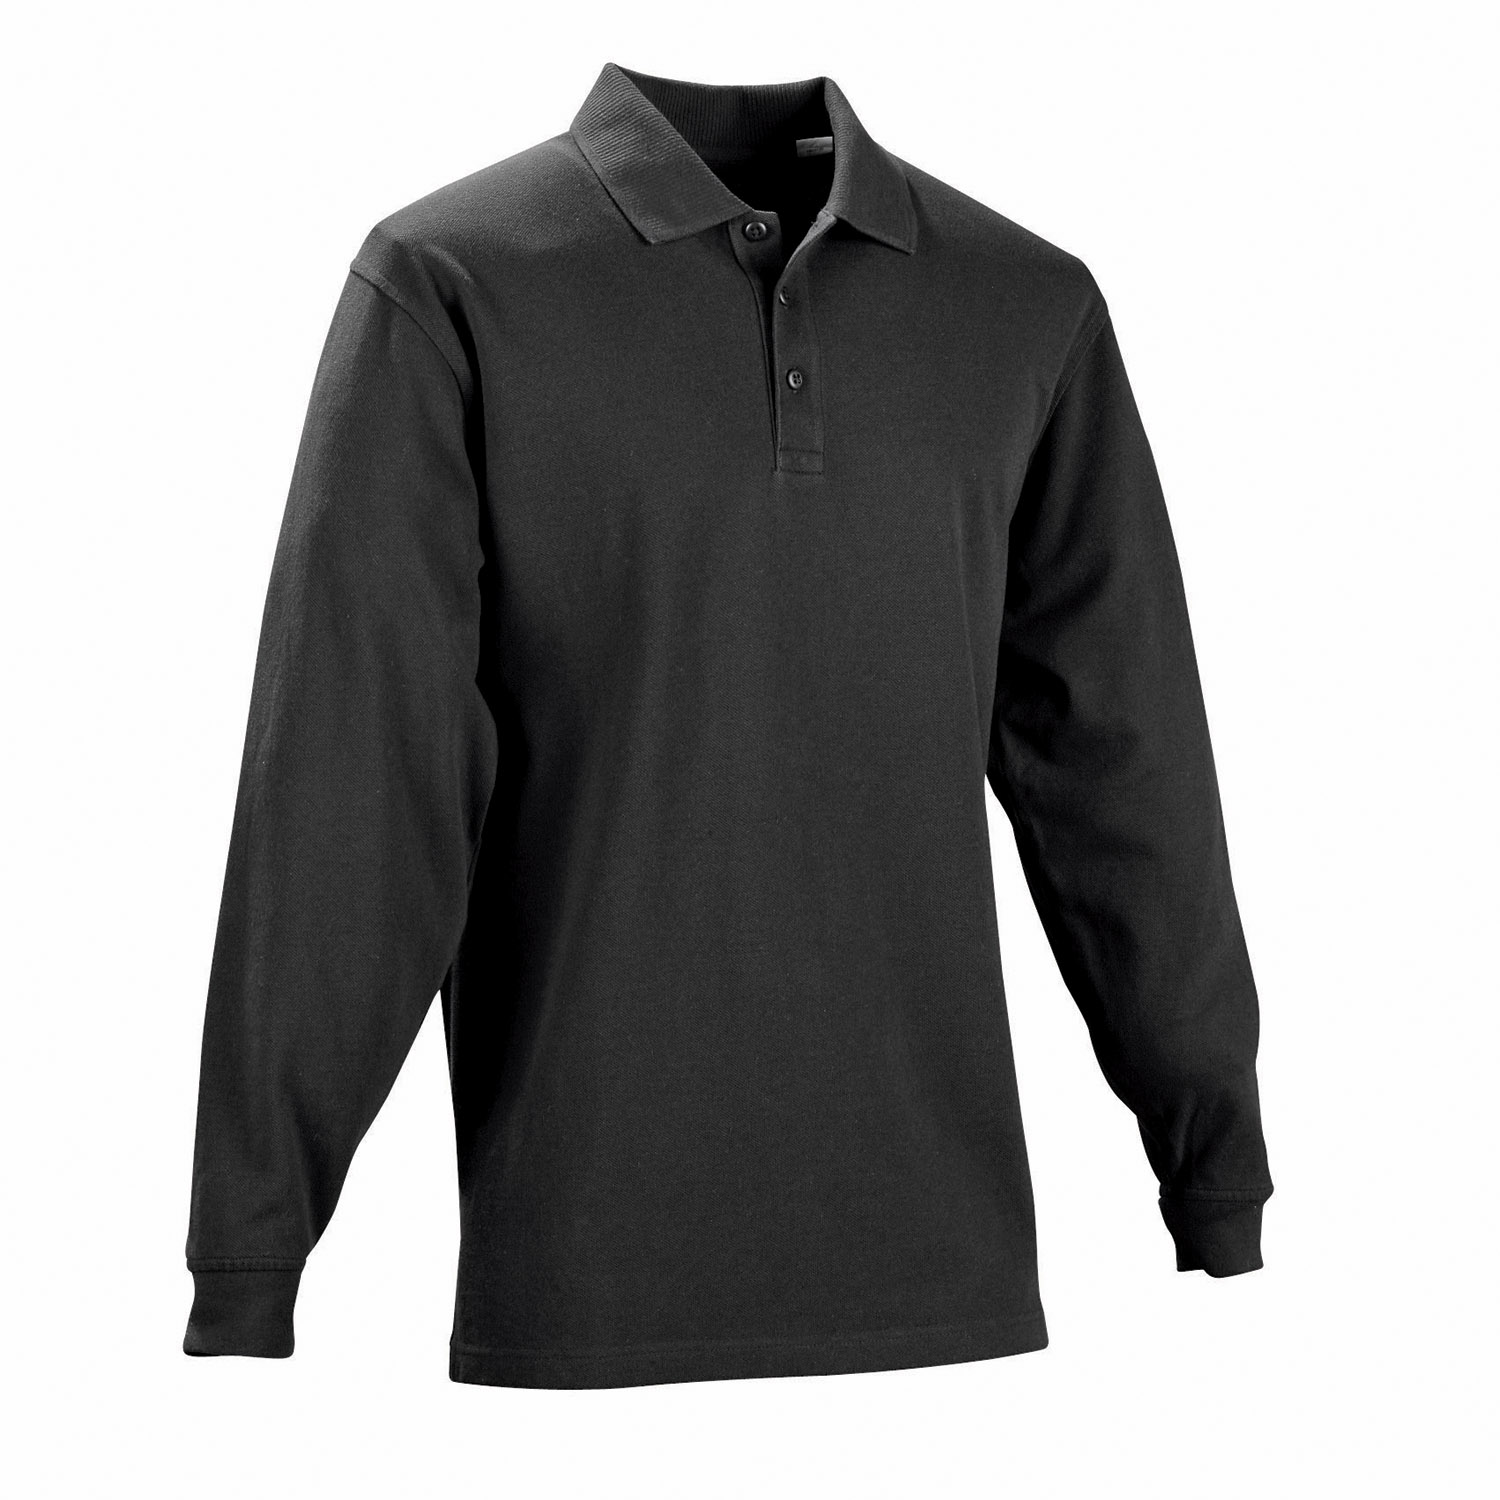 5.11 Tactical Utility Mens Long Sleeve Polo